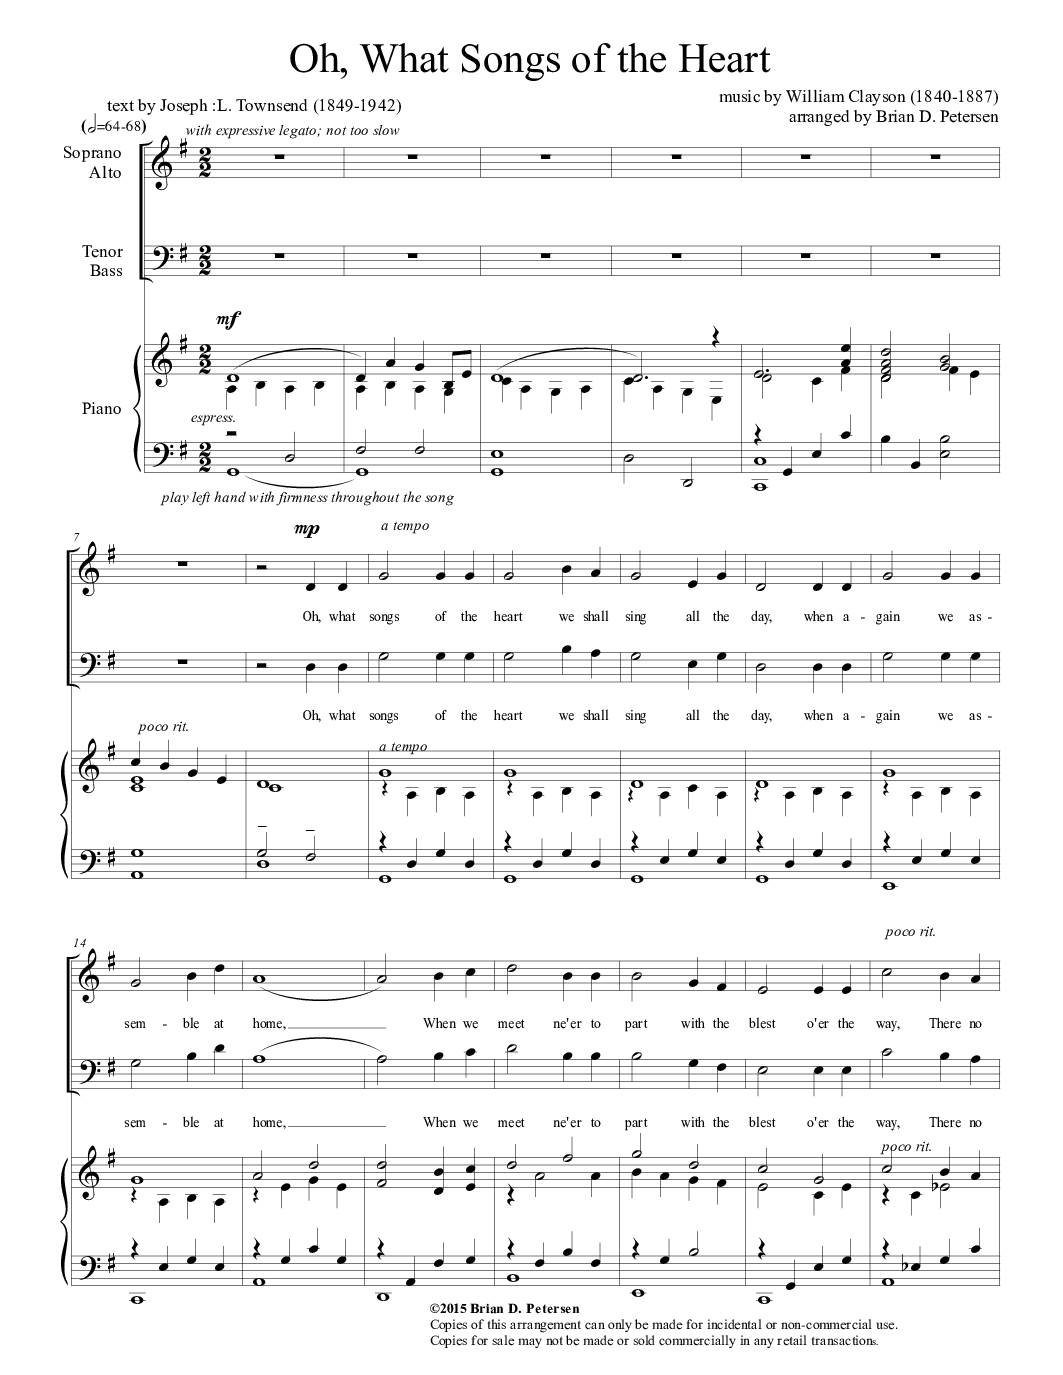 Plan of salvationpremortal life sheet music 318 free arrangements o what songs of the heart hexwebz Gallery